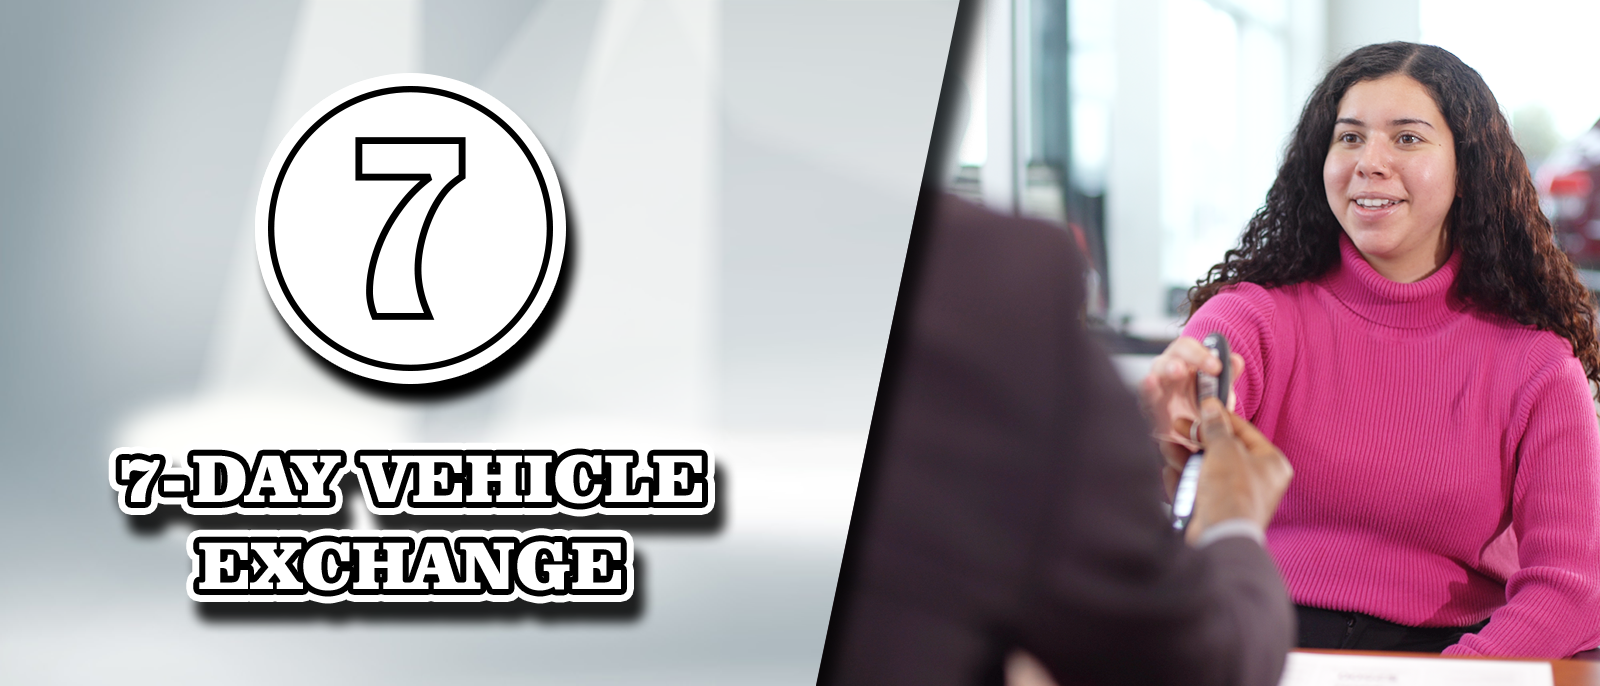 3-Day Guarantee or 7-Day Vehicle Exchange at Clay Cooley Volkswagen of Park Cities